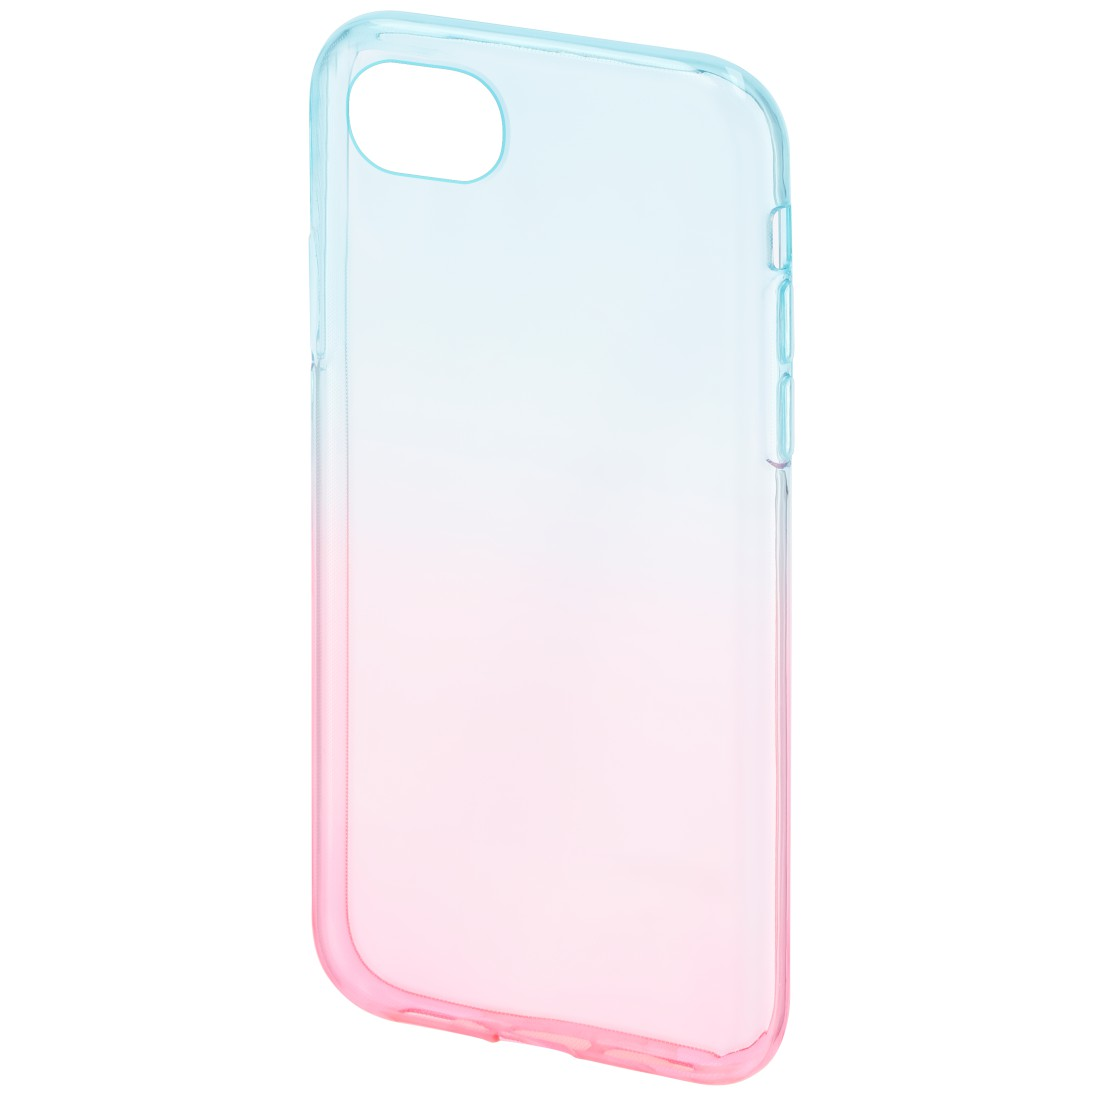 "abx2 High-Res Image 2 - Hama, Coque de protection ""Shade"" pr Apple iPhone 6/6s/7/SE 2020, bleue/rose"